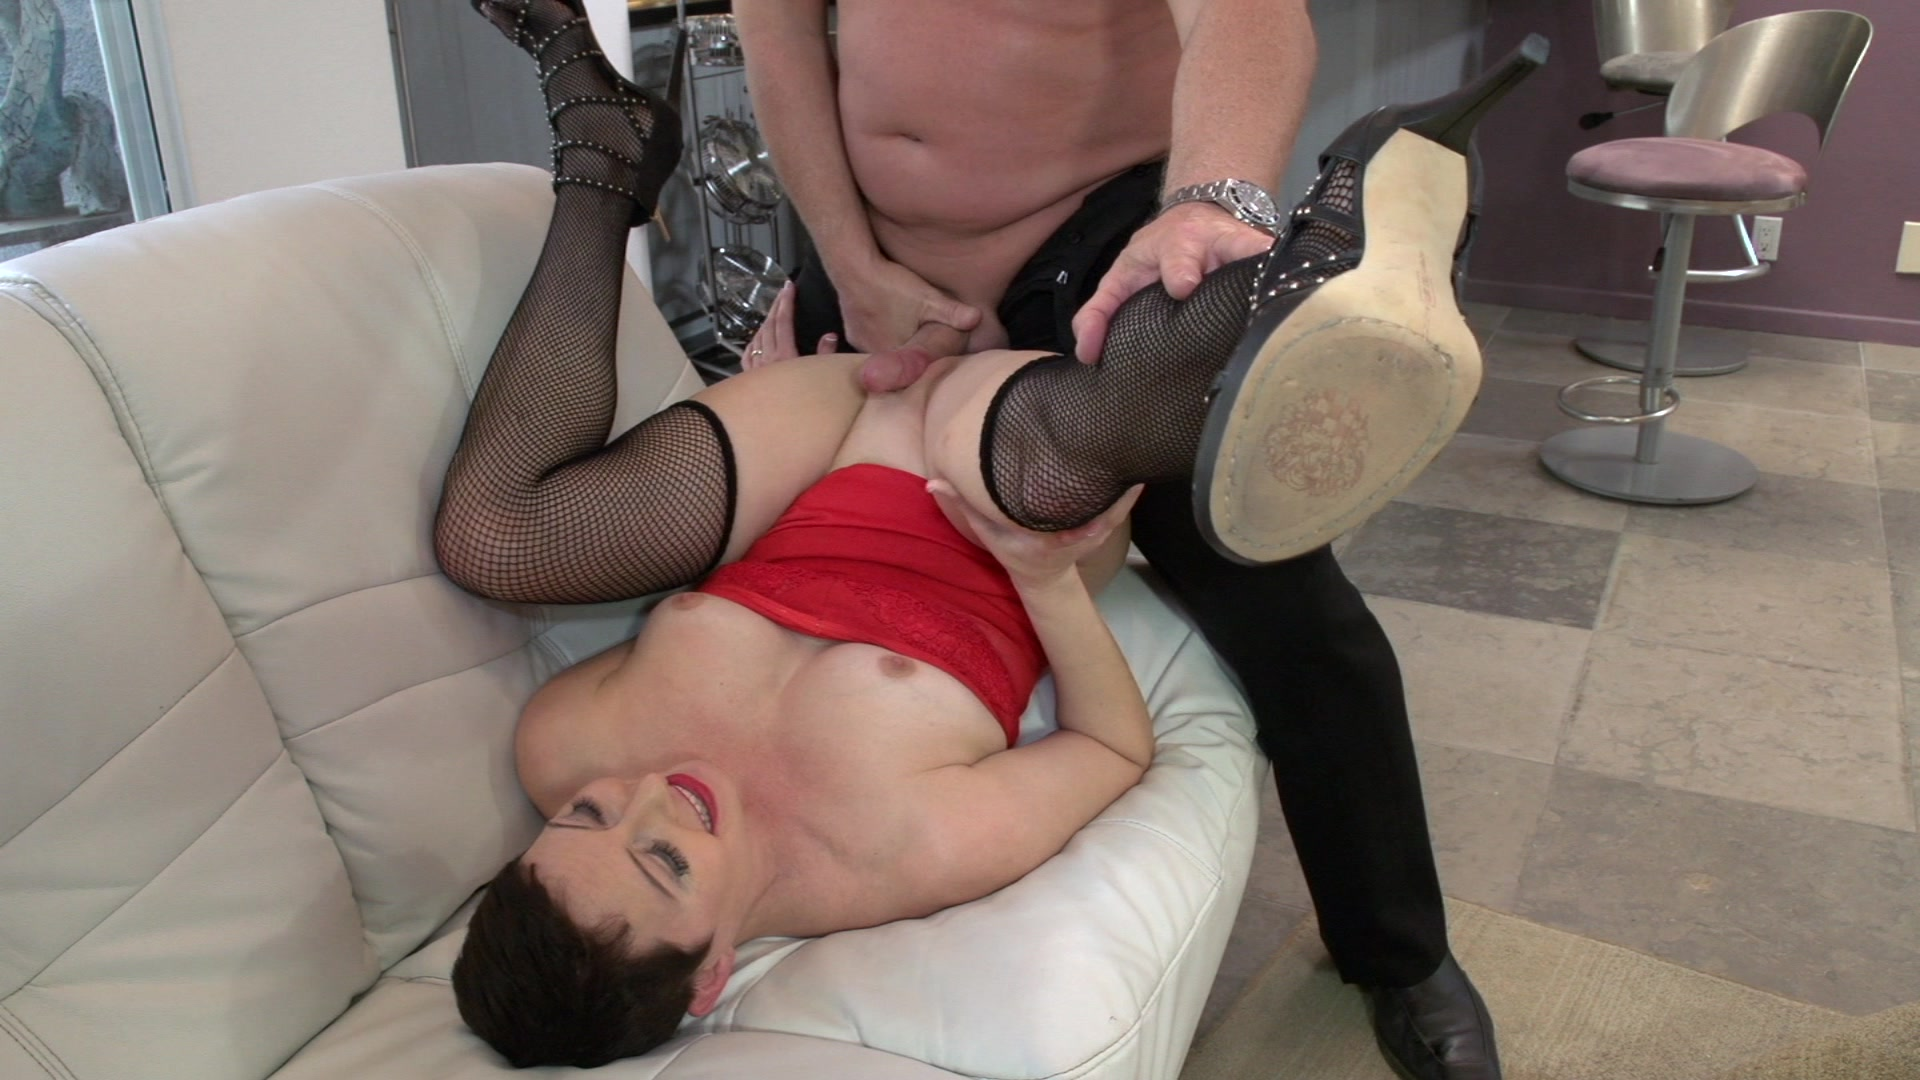 Sexy Short Haired Woman Enjoys Sucking His Big Dick and Getting Fucked Starring: Kali Karinena